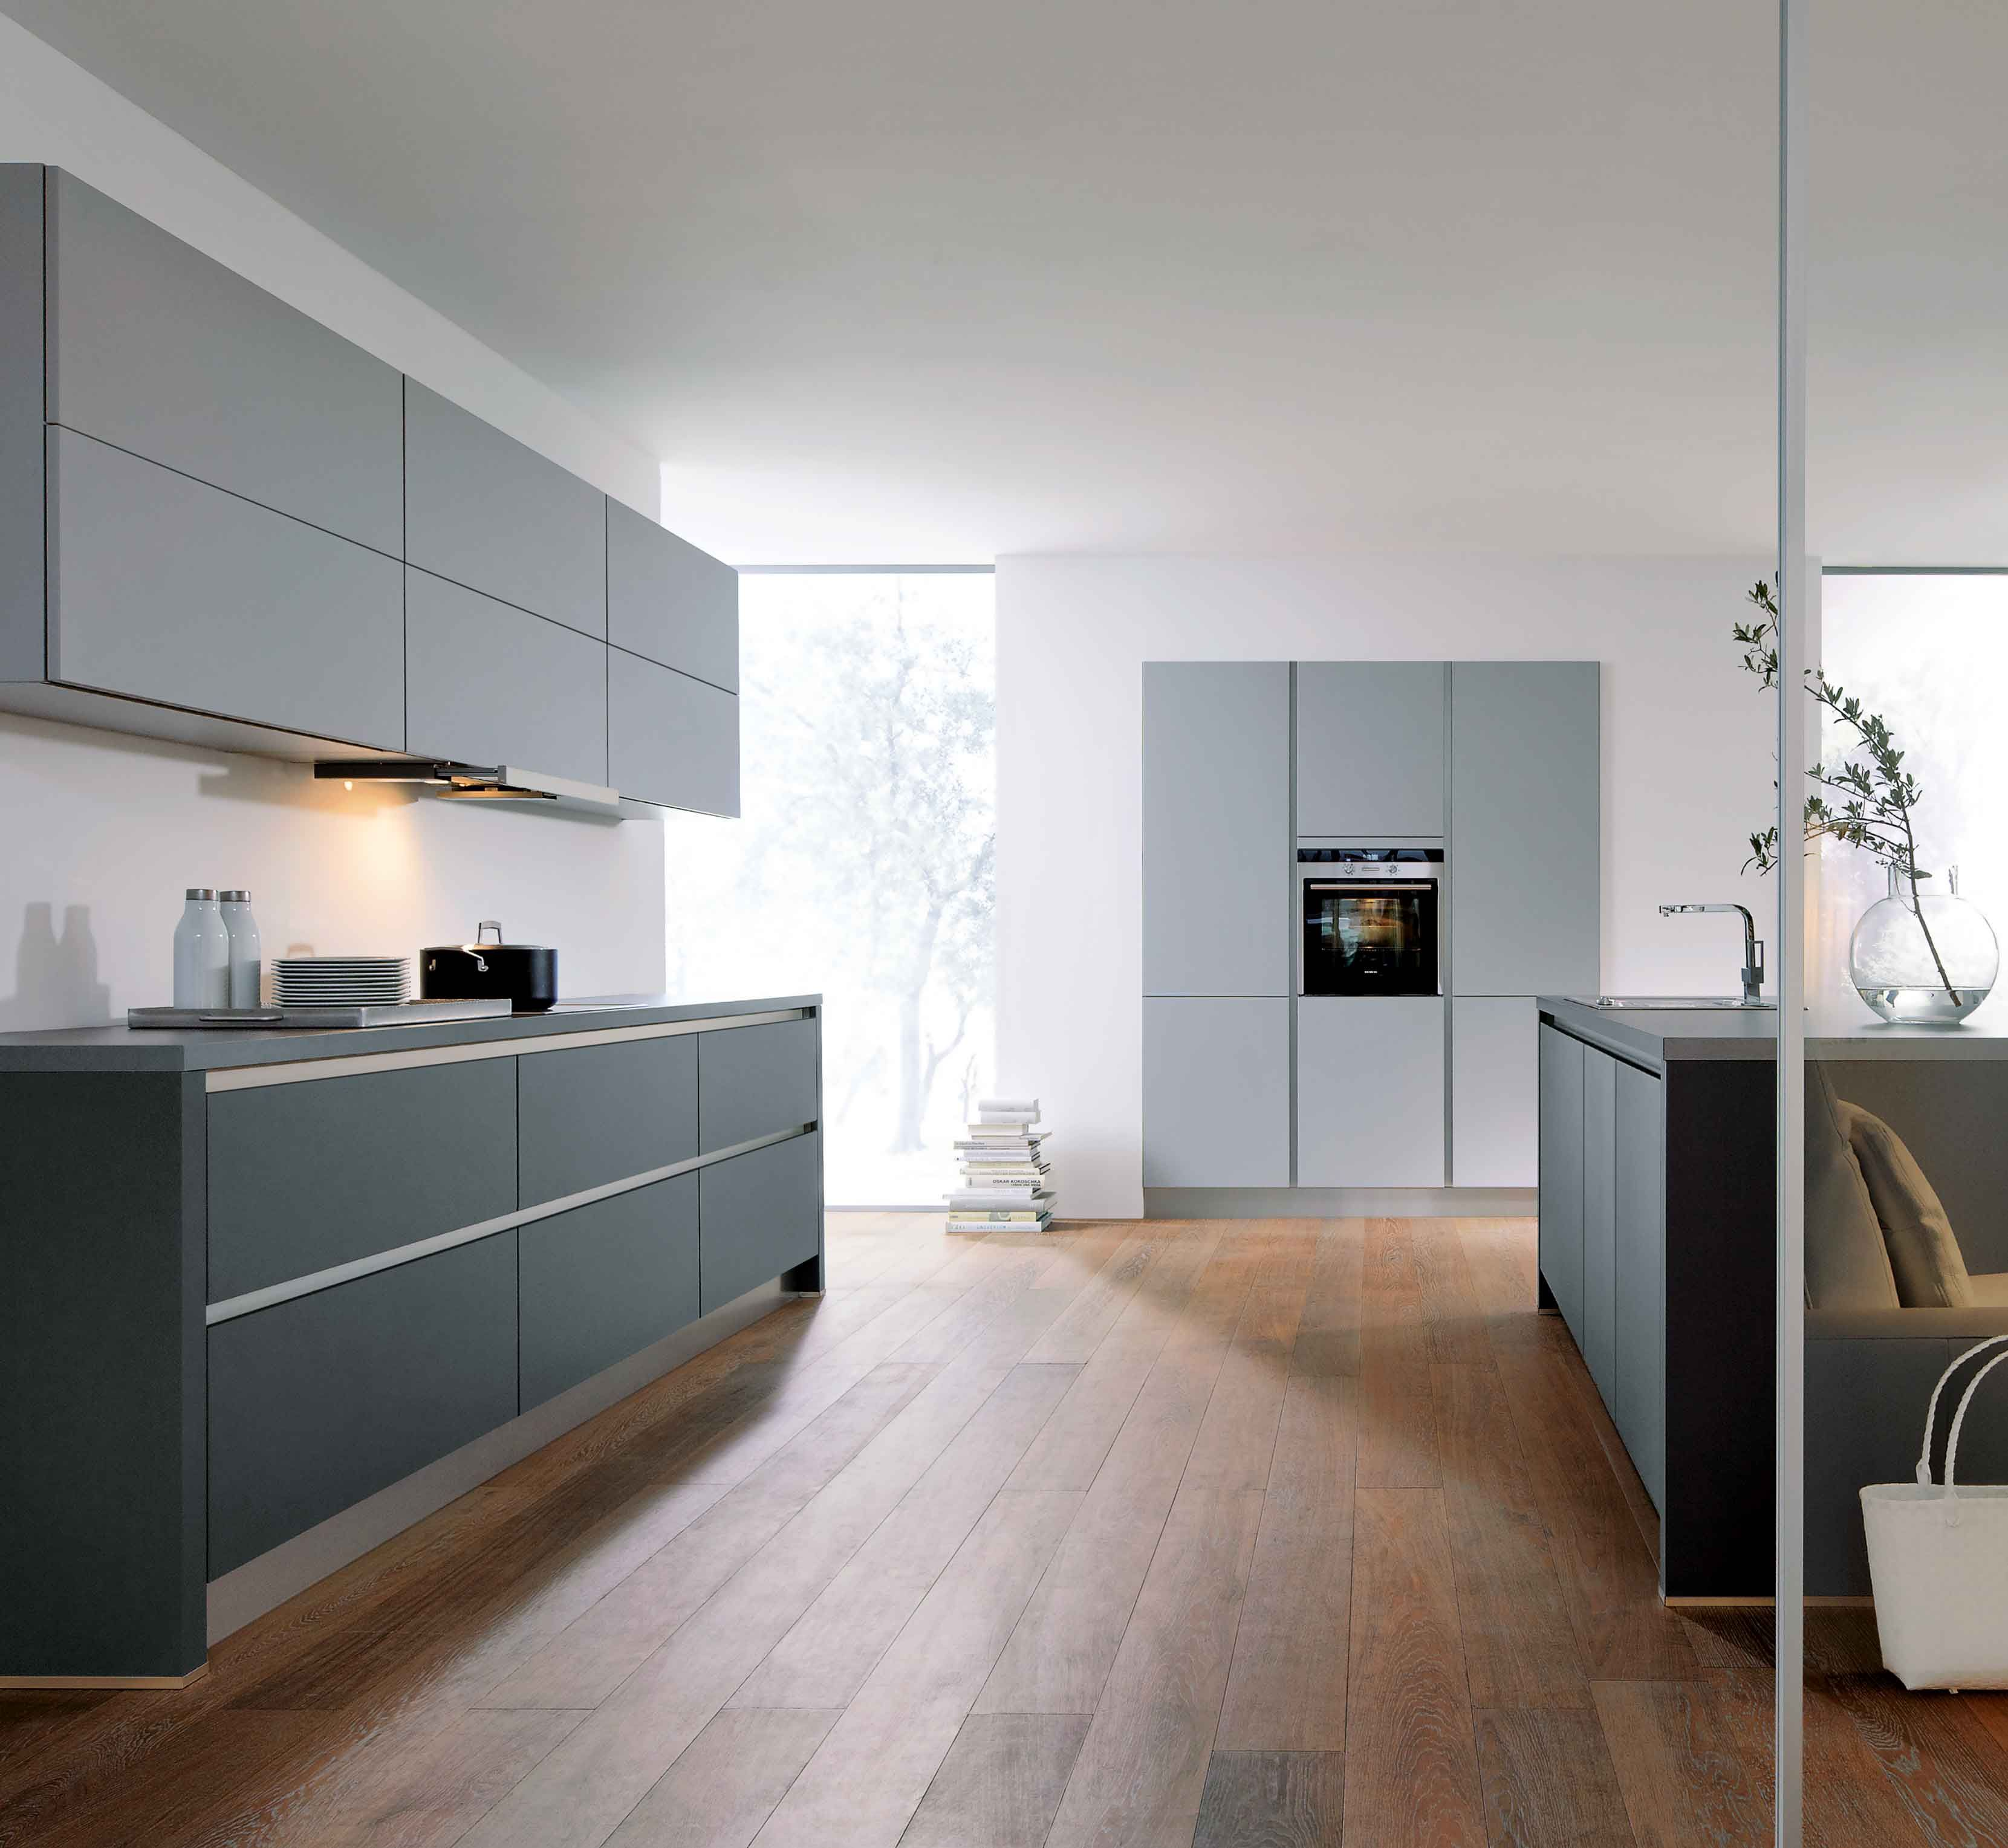 German Kitchen Designs: A Lava Black And Stone Grey Kitchen. The Grip Ledges And